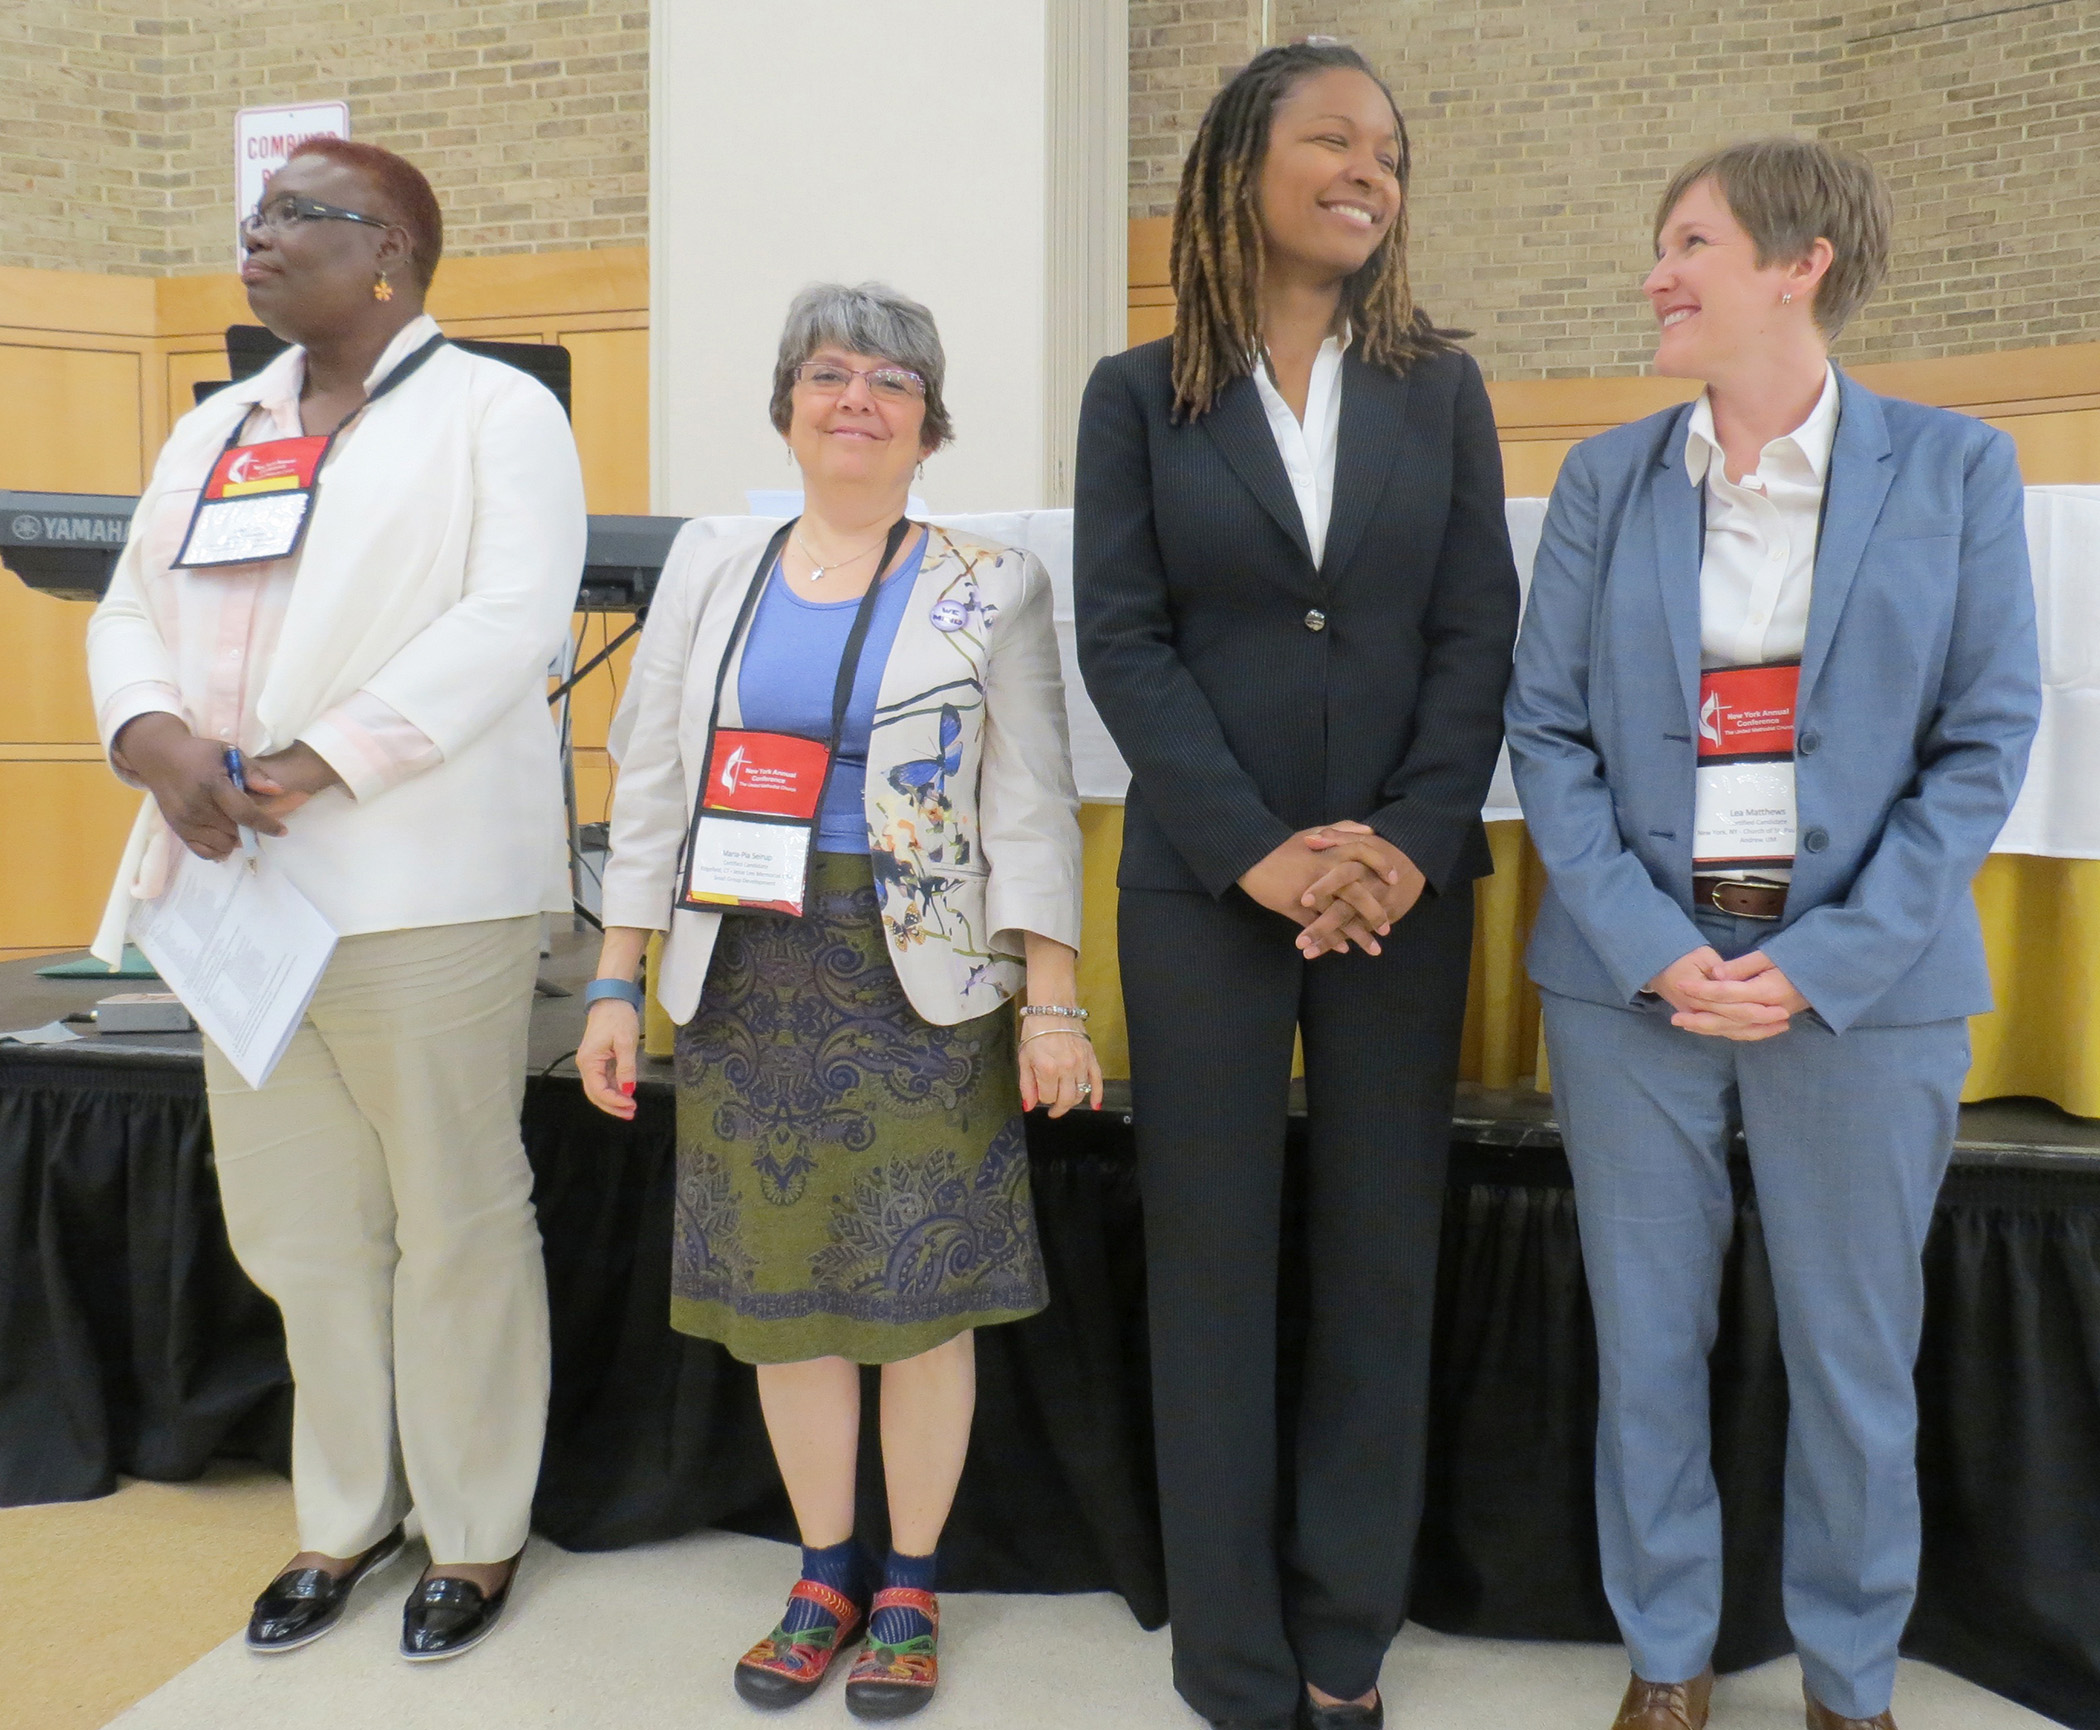 Elyse Ambrose, second from right, and Lea Matthews, far right, were among group approved as provisional deacons by the New York Conference. Photo by Joanne Utley